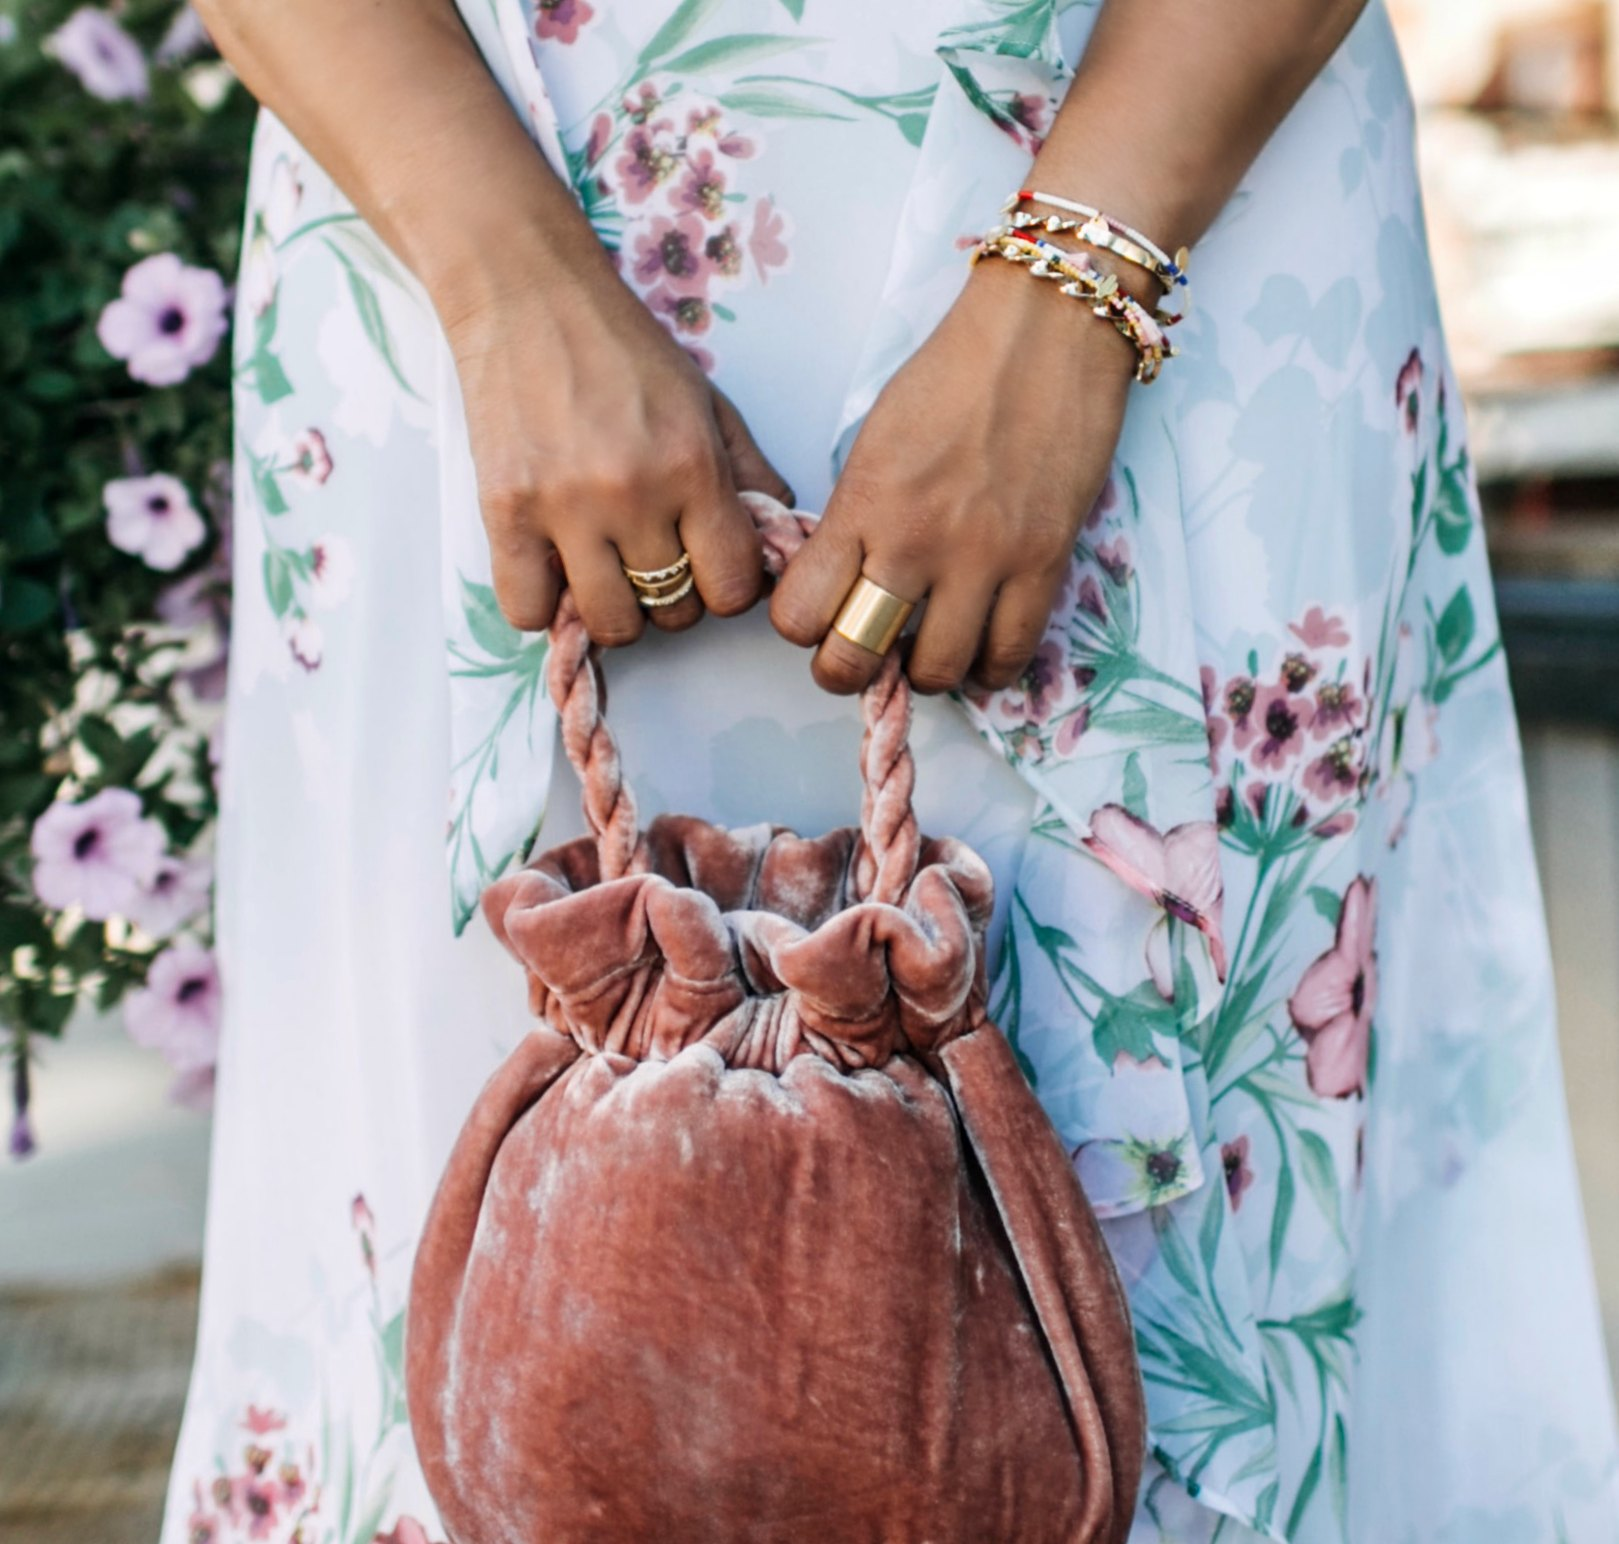 wearing madewell Two-Pack Seed Bead Charm Bracelets | | Cute Wedding Guest Dresses for Summer featured by popular Ohio modest fashion blogger, Dreaming Loud